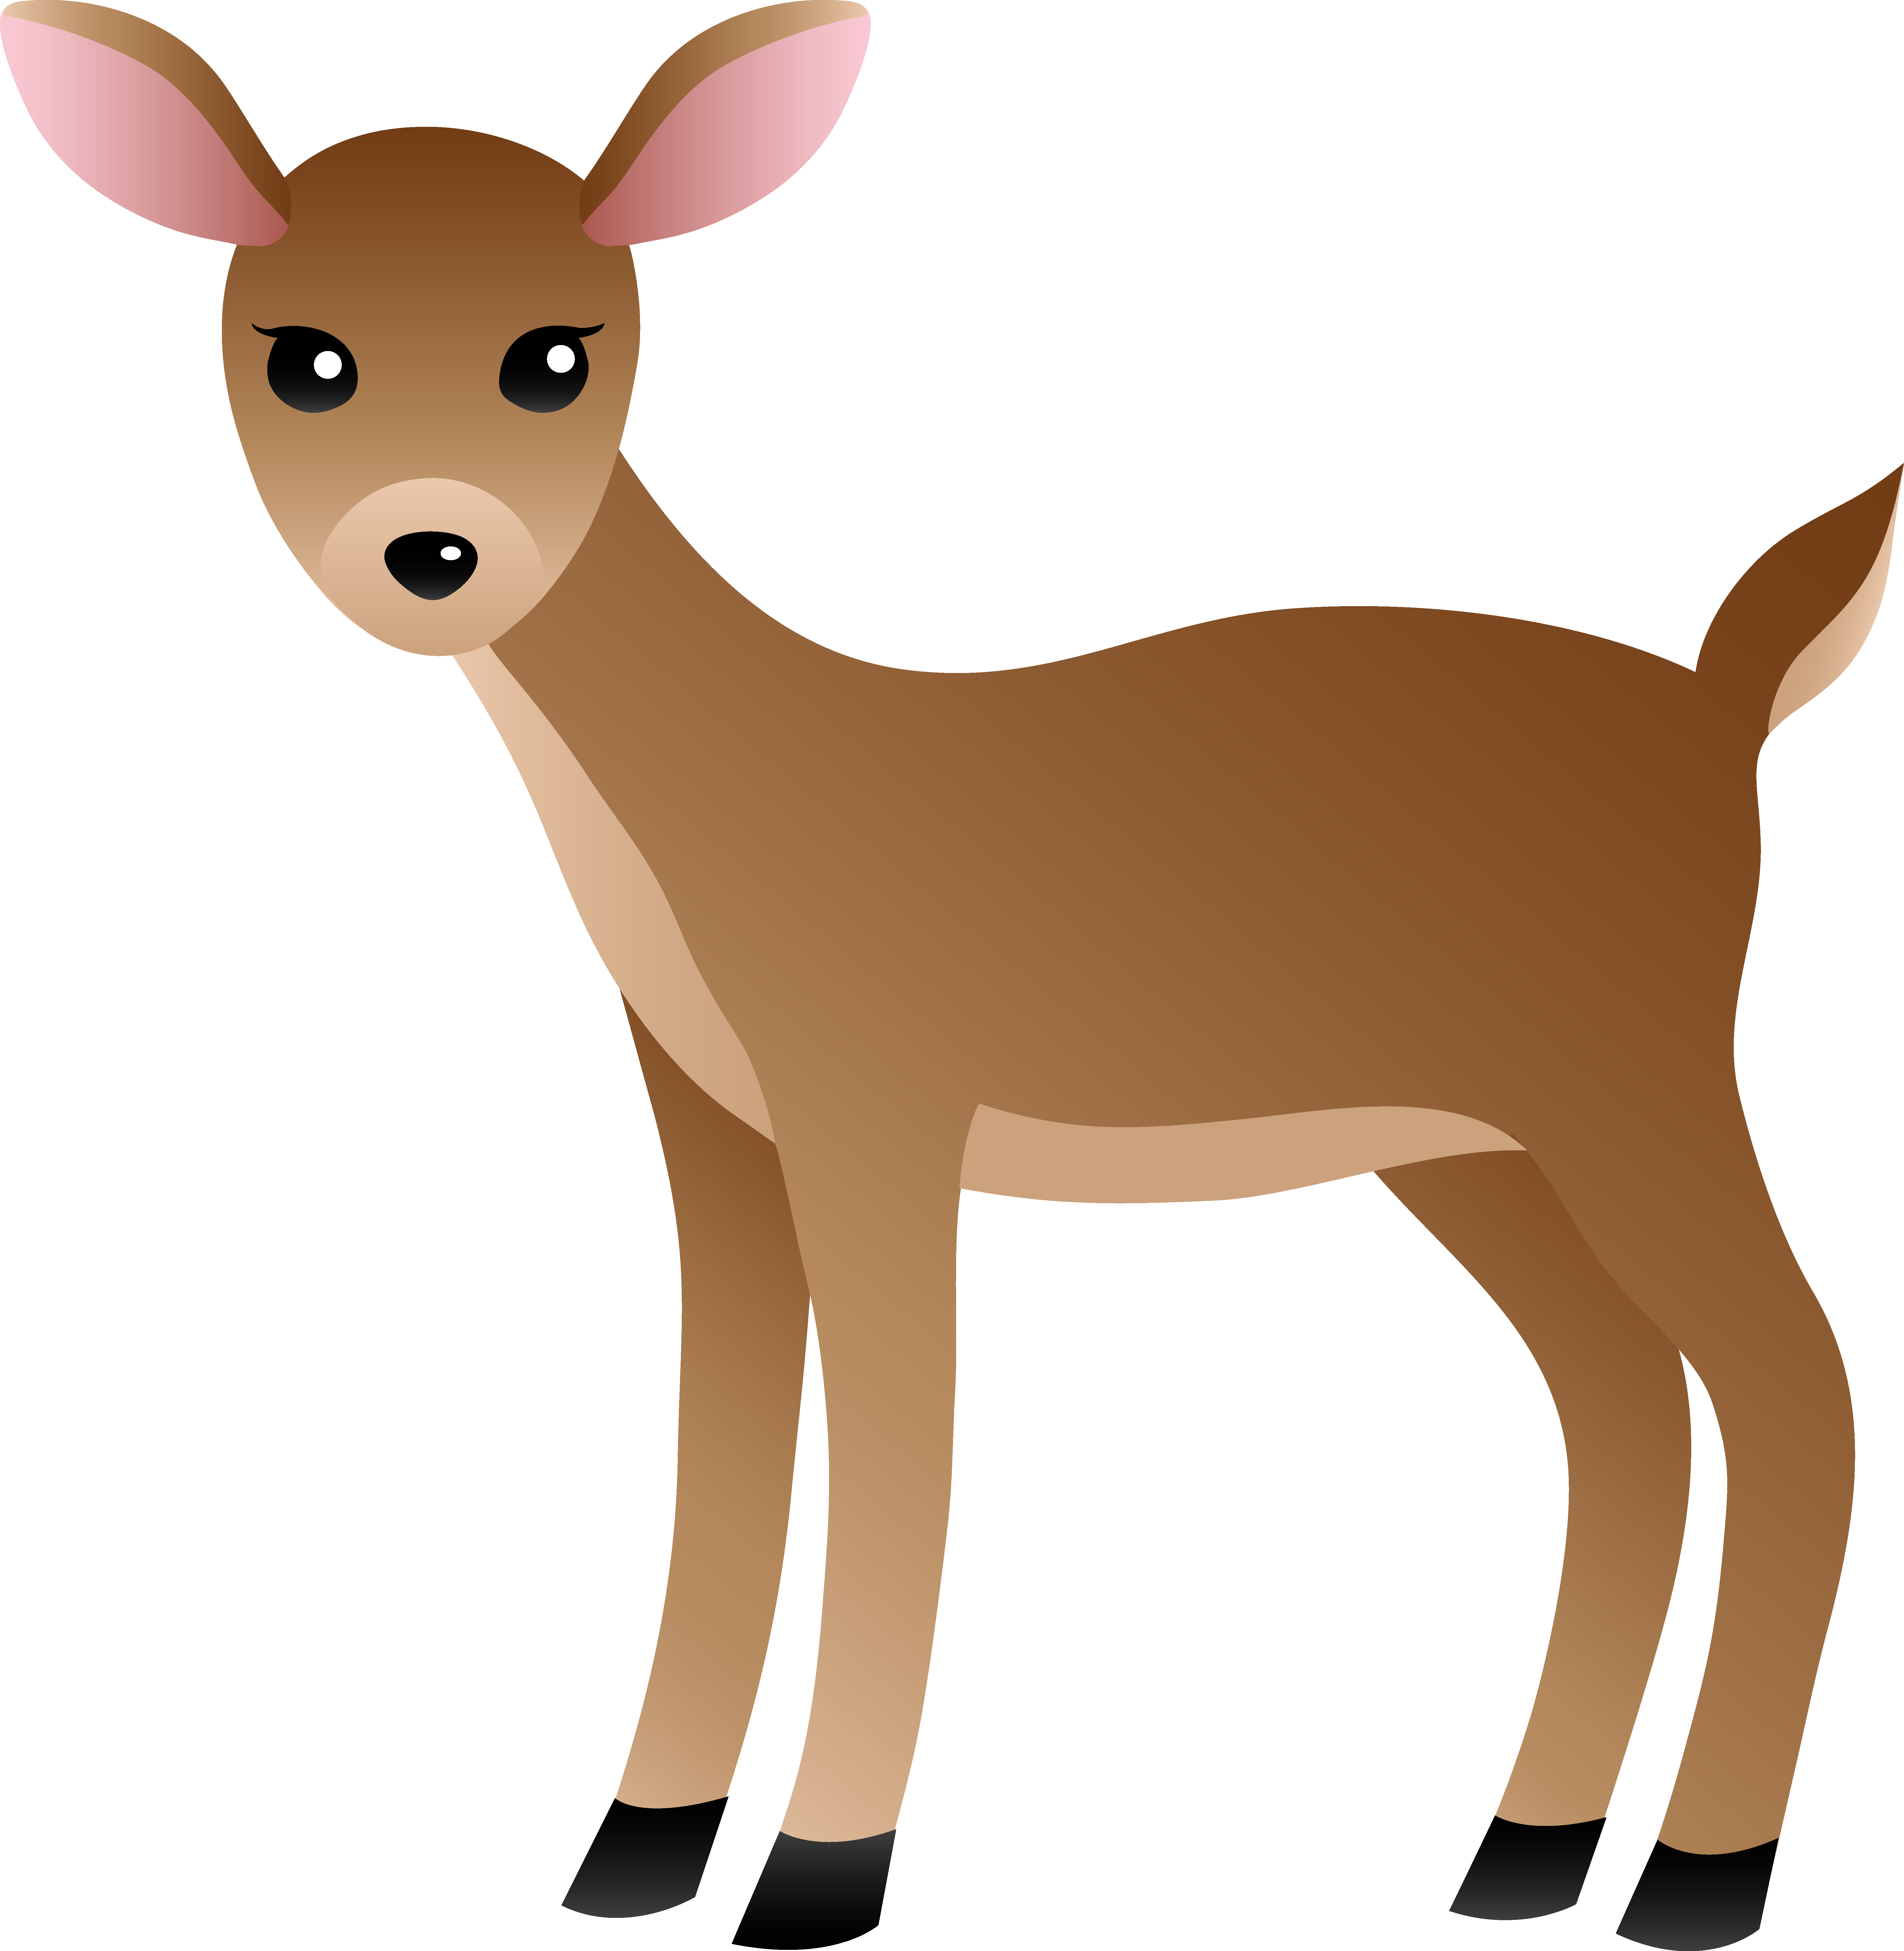 Baby deer clipart sad images gallery for Free Download.